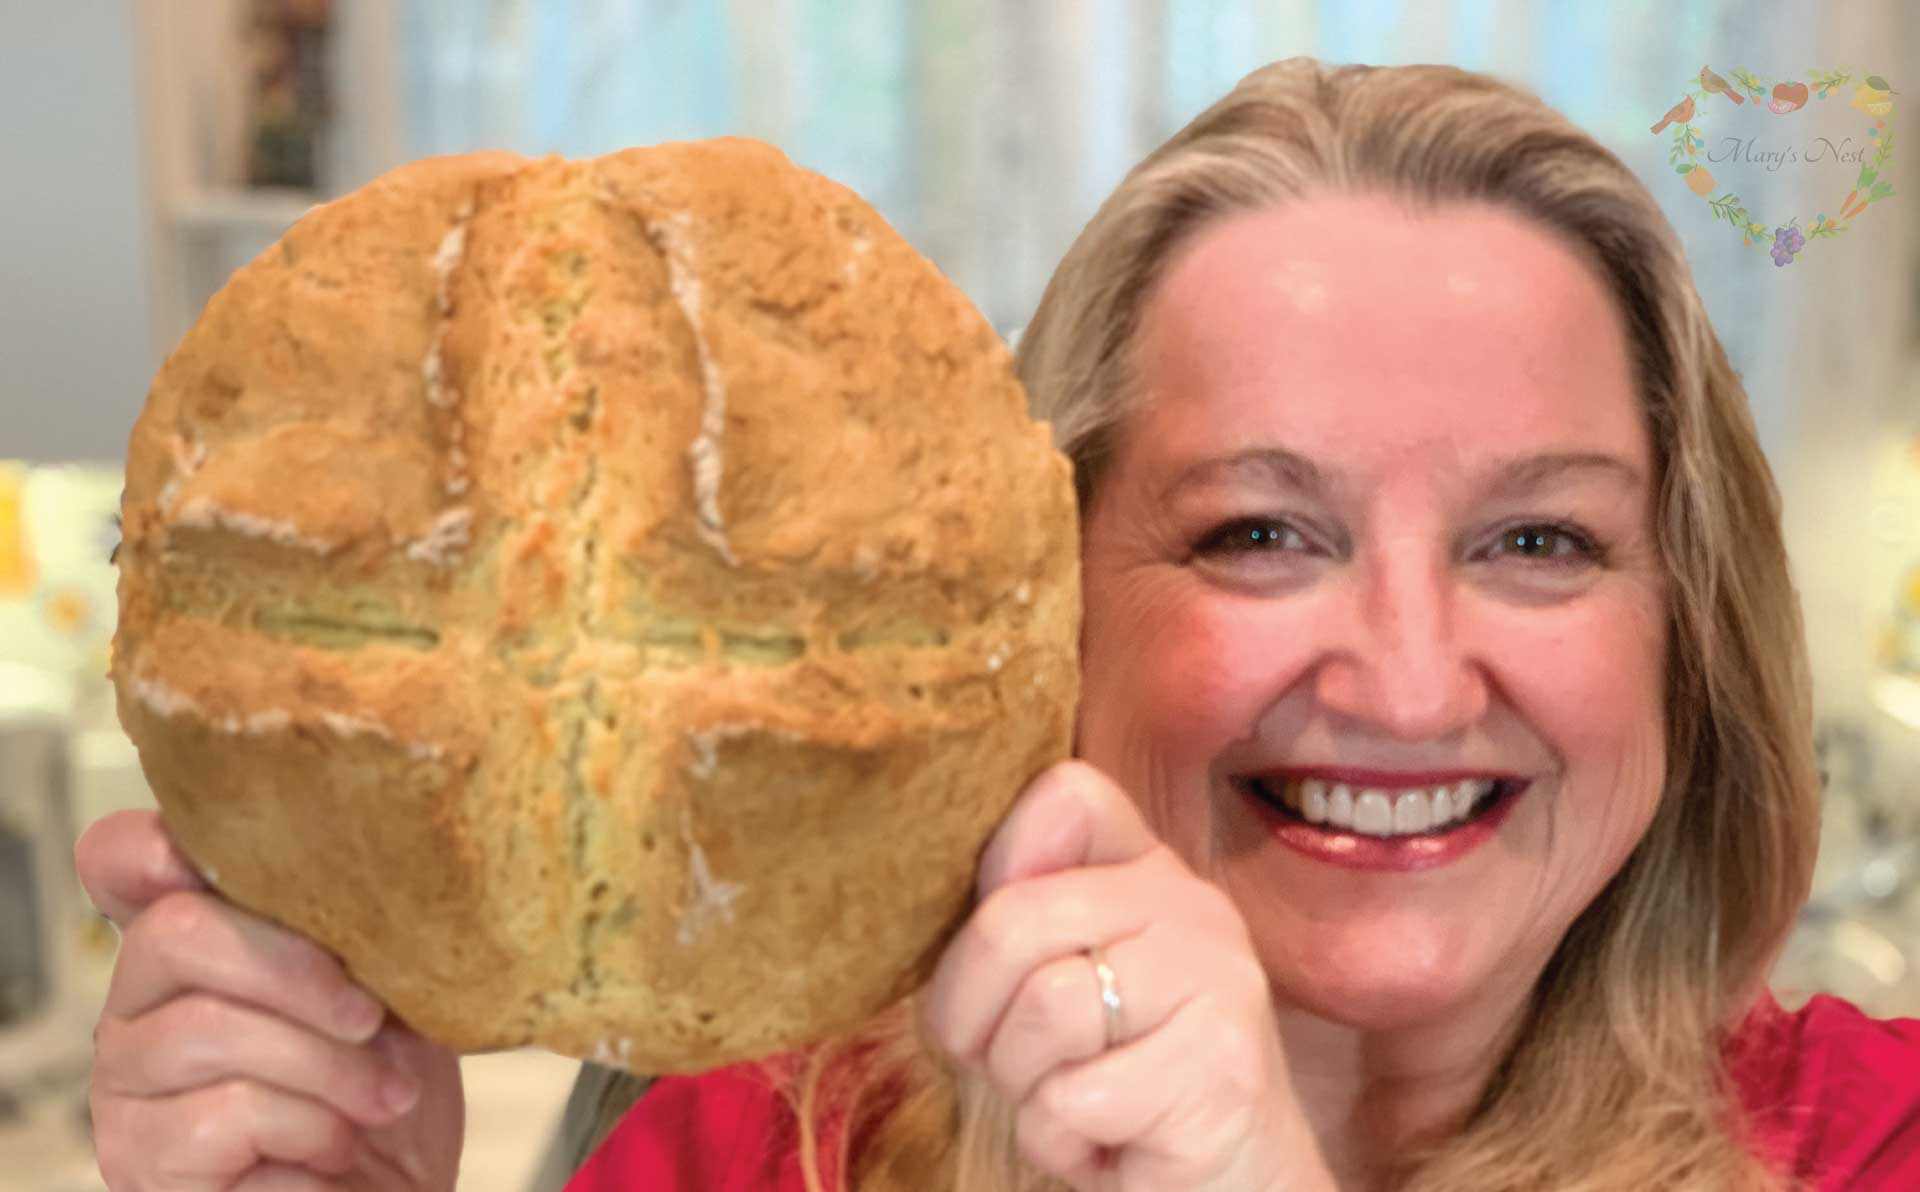 How To Make Bread Without Yeast Easy Irish Soda Bread Mary S Nest